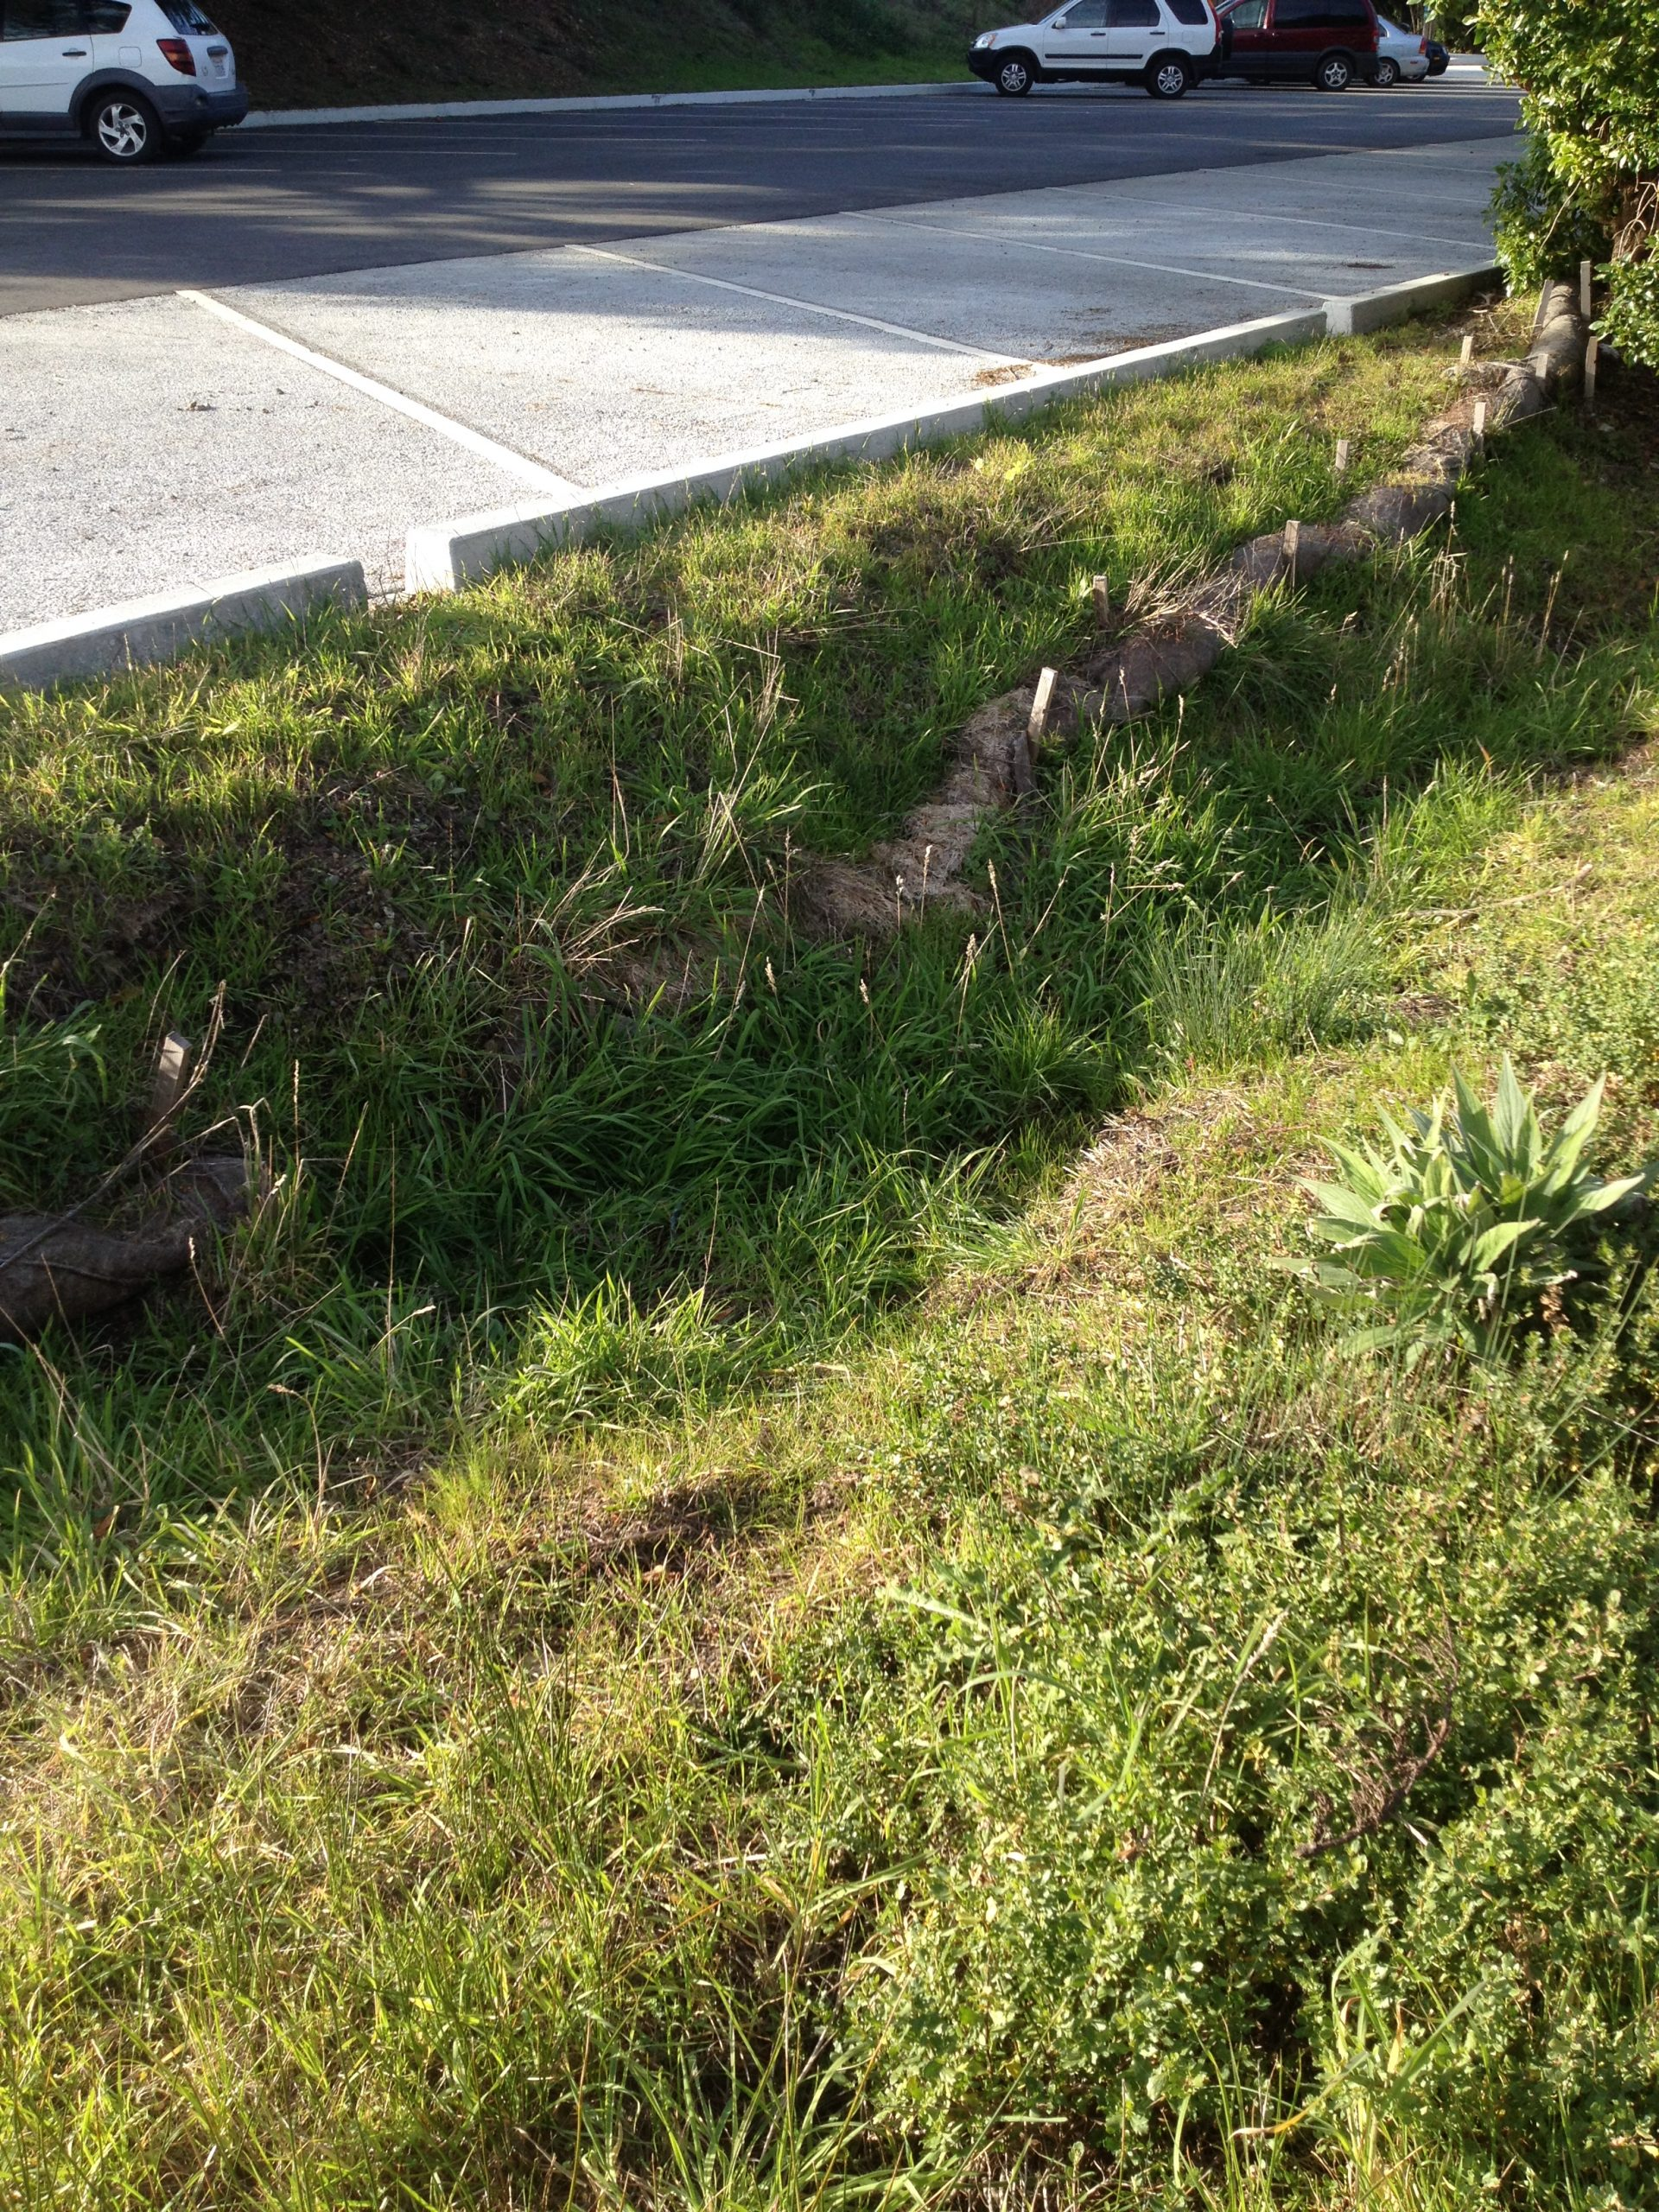 Agate Beach parking lot curb cuts into swale